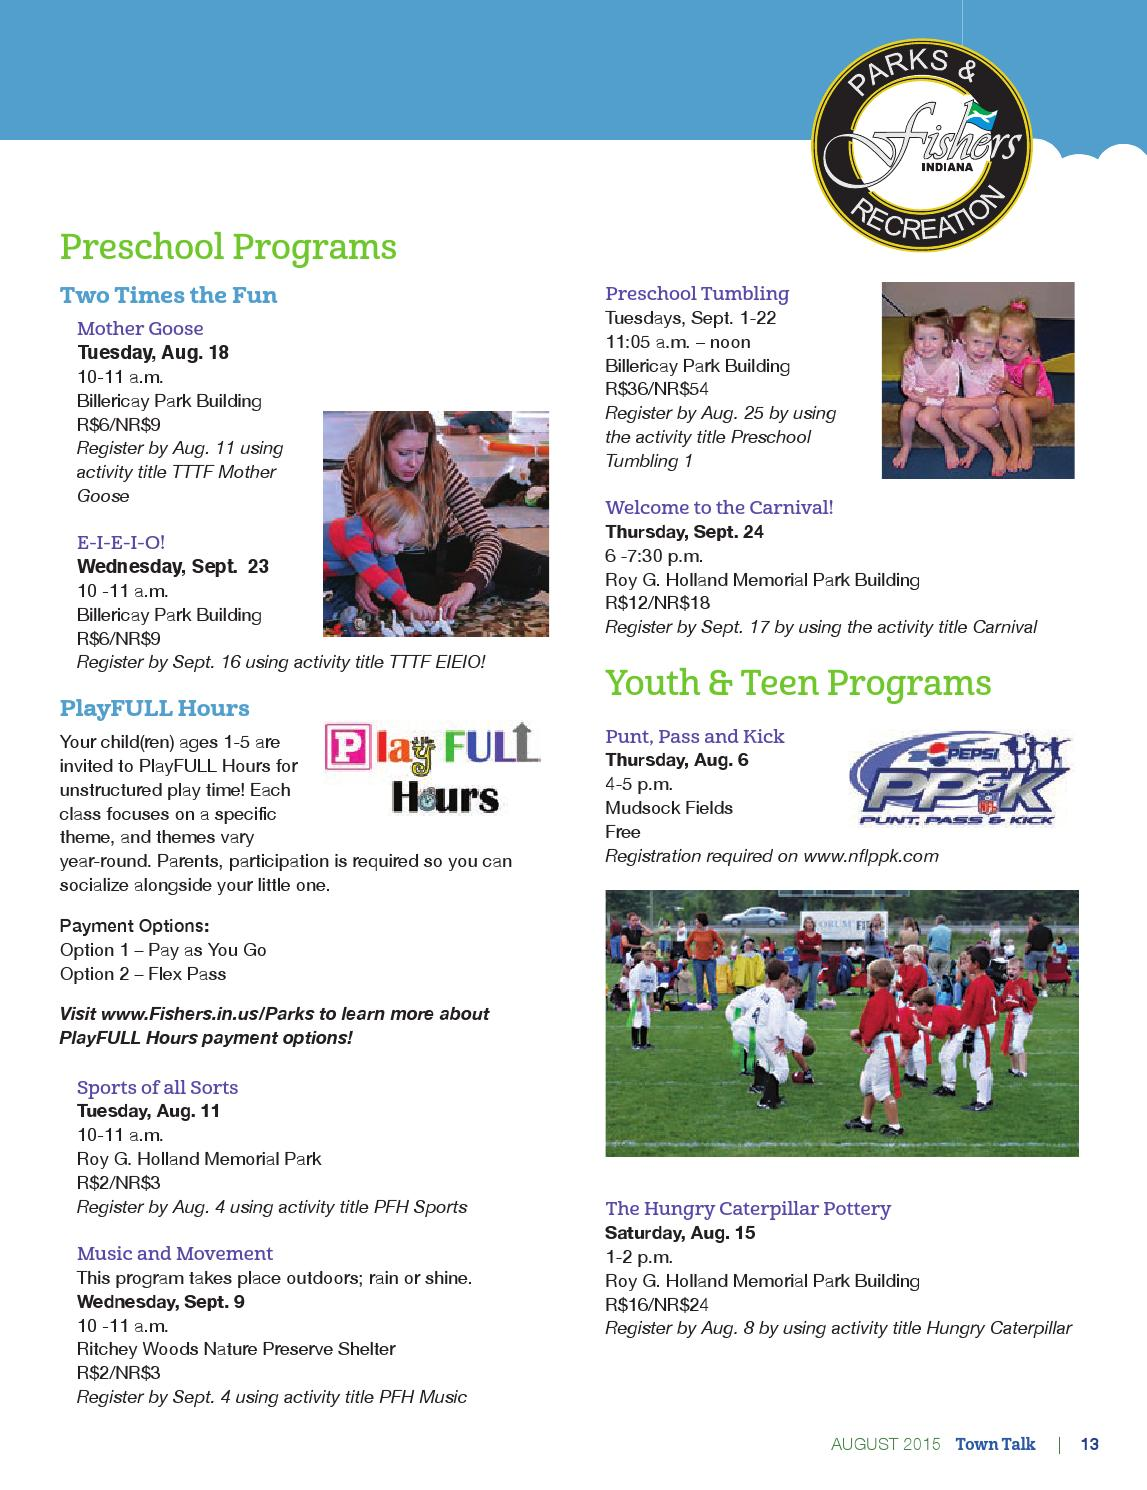 Fishers Town Talk - August 2015 by City of Fishers - issuu